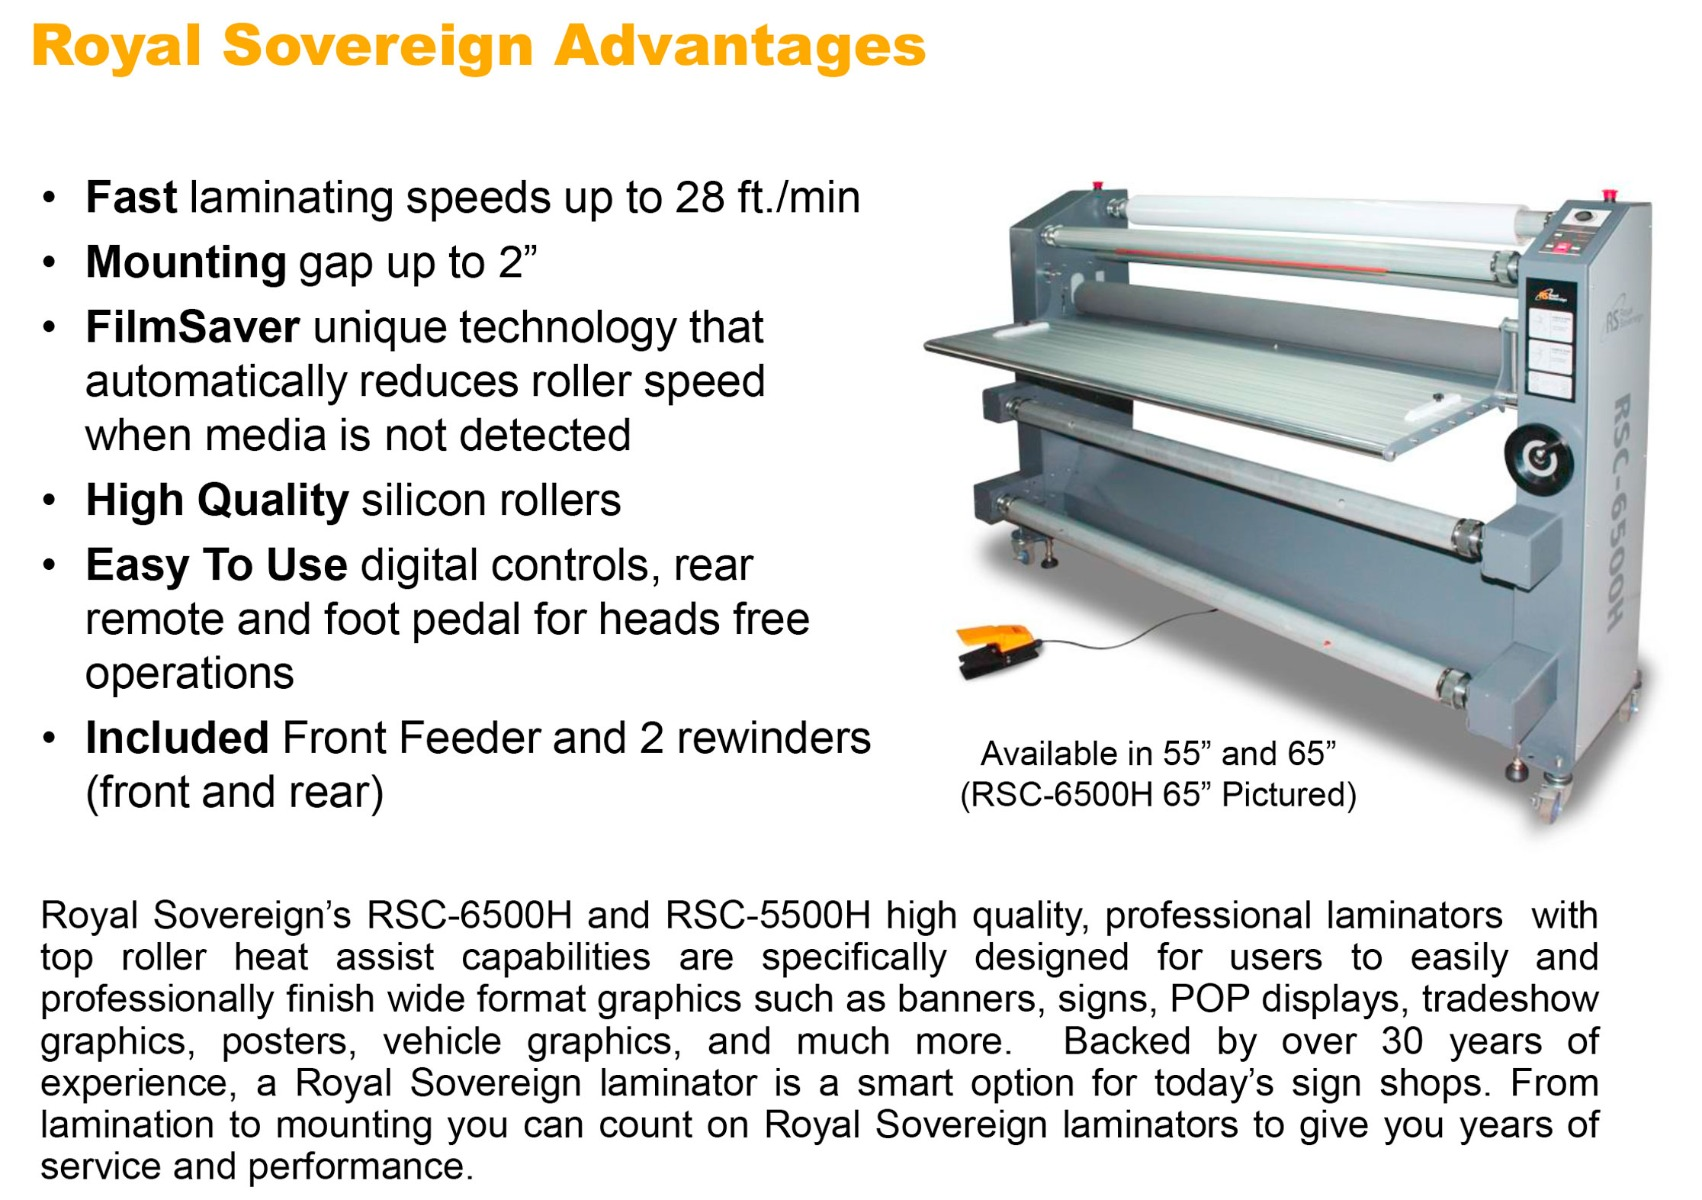 royal sovereign rsc-6500h laminator features including fast up to 28ft per minute 2